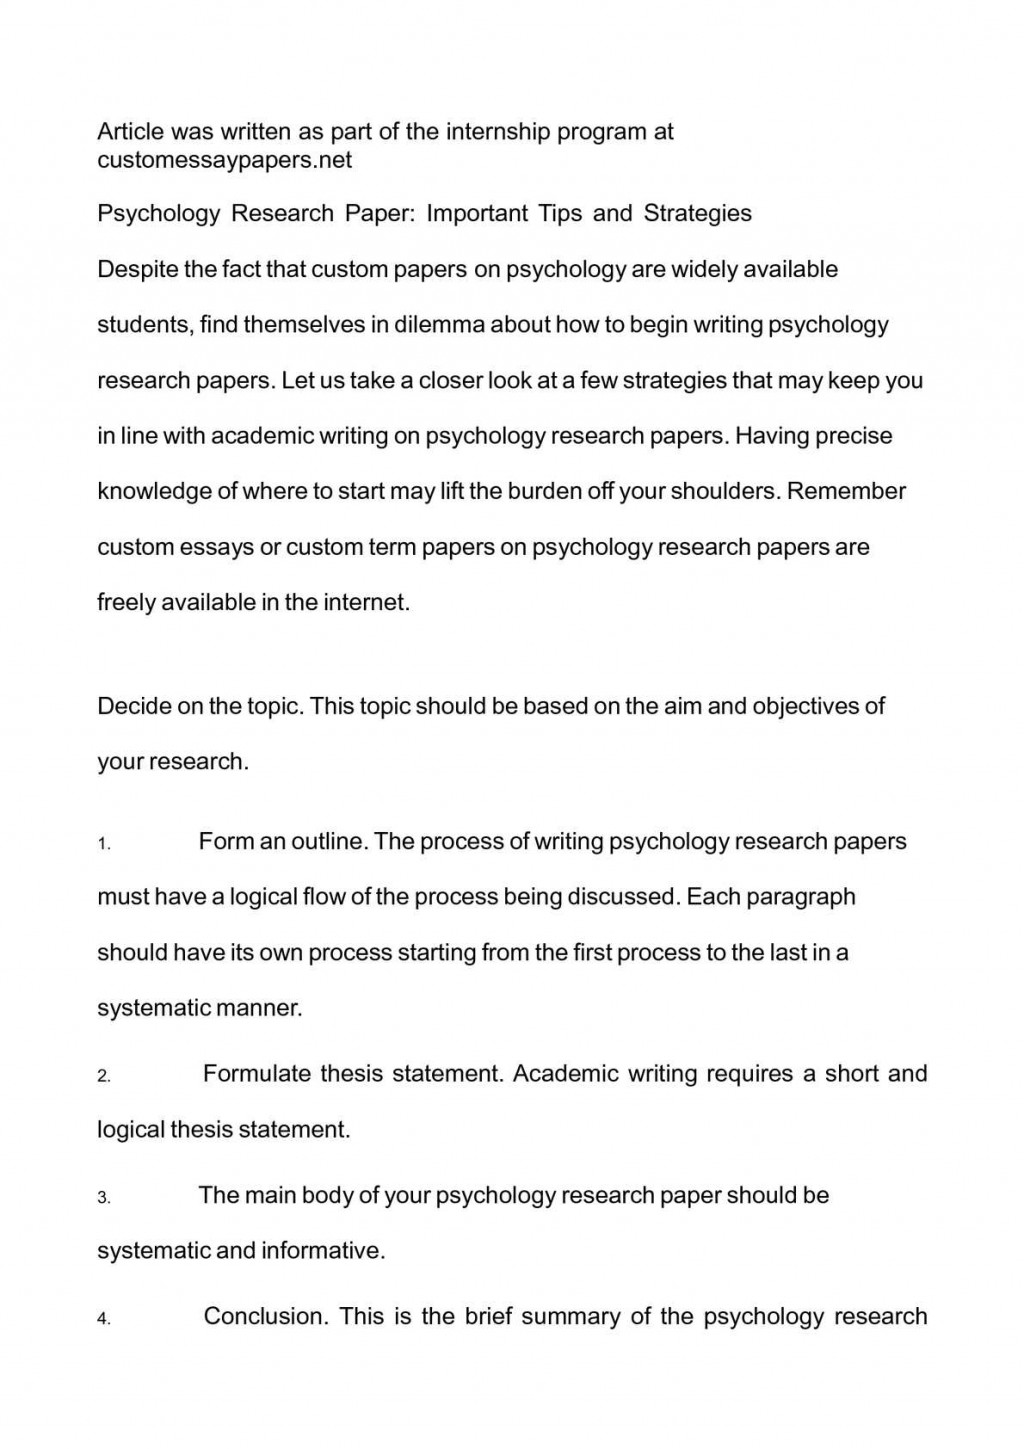 019 Psychology Research Paper Topics Striking For High School Students Reddit Large